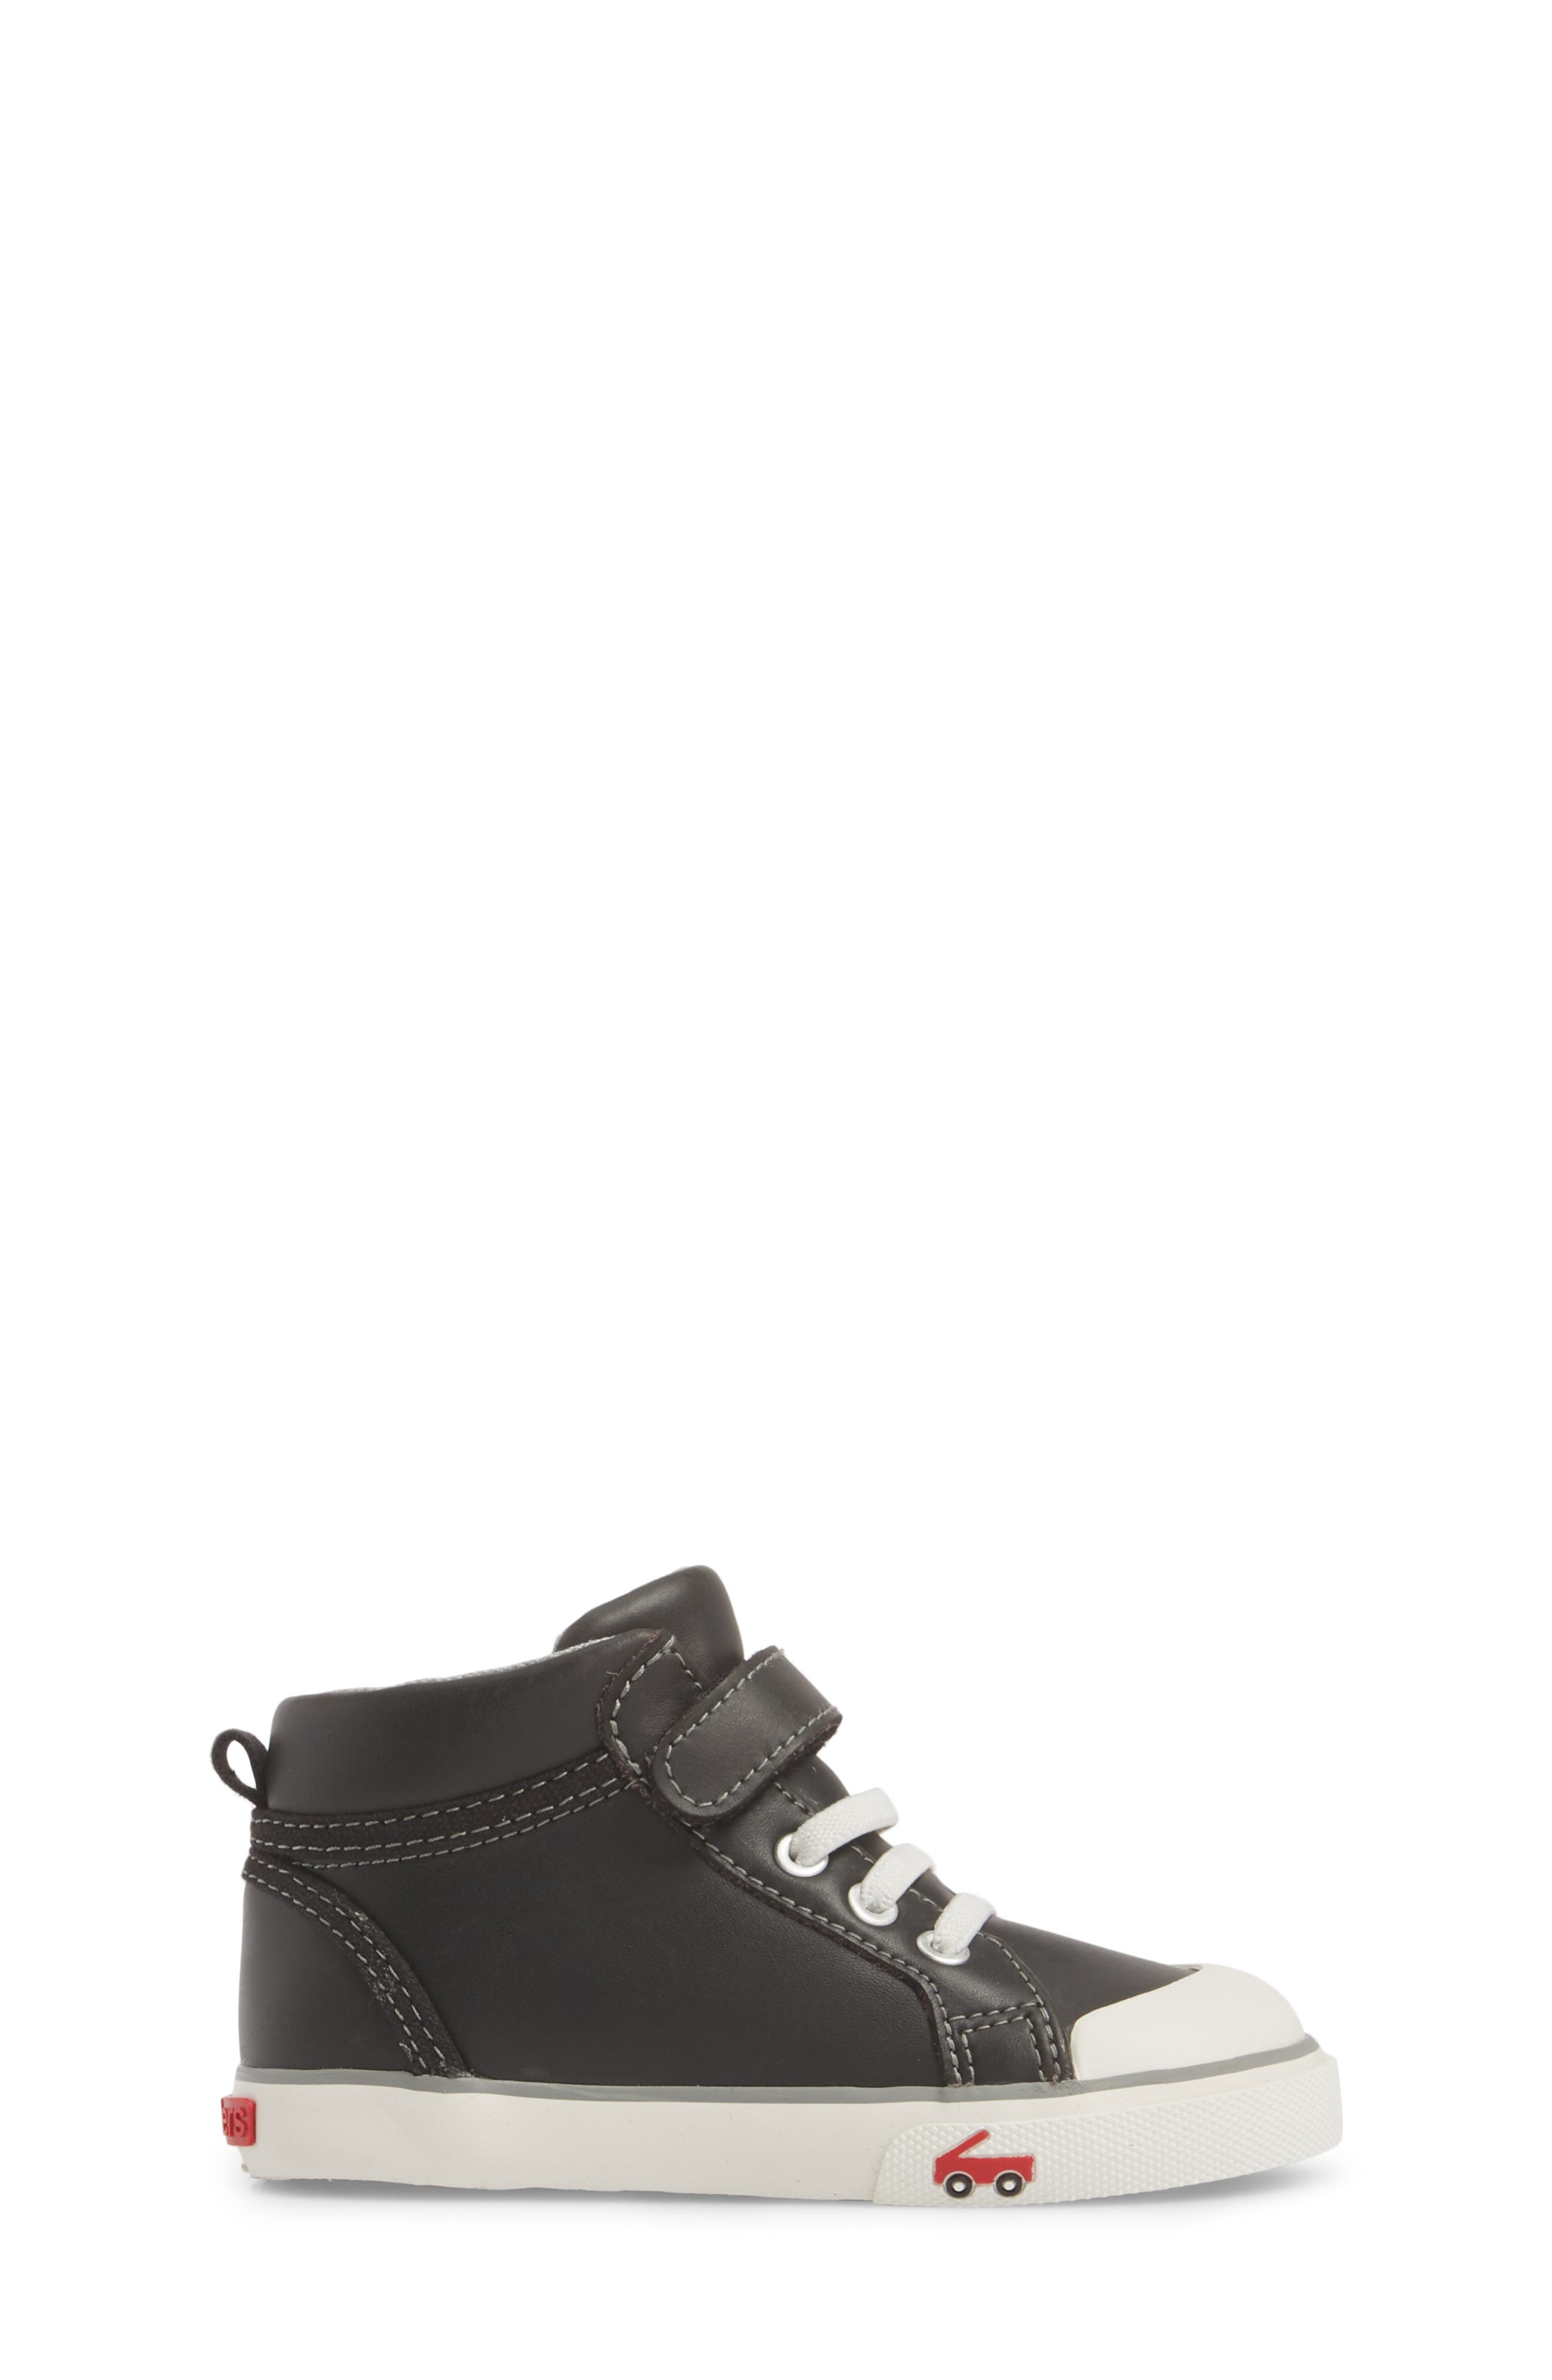 'Peyton' High Top Sneaker,                             Alternate thumbnail 3, color,                             Black Leather